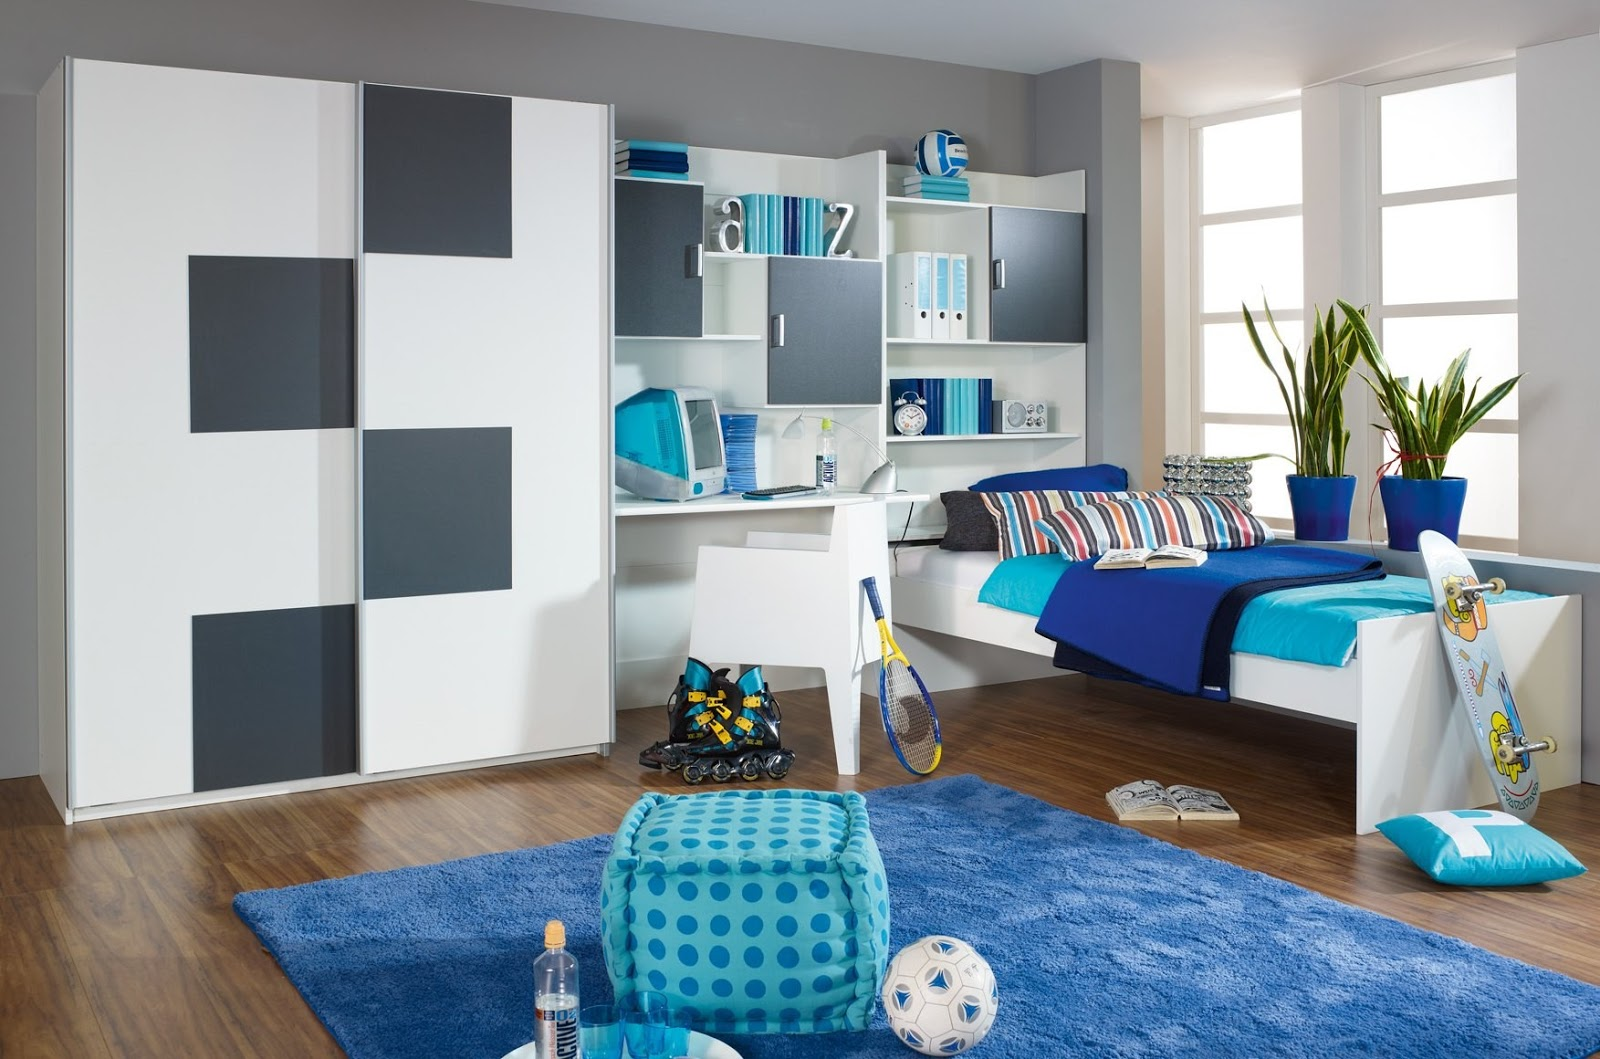 chambre enfant b b et d coration chambre b b sant b b beau b b. Black Bedroom Furniture Sets. Home Design Ideas